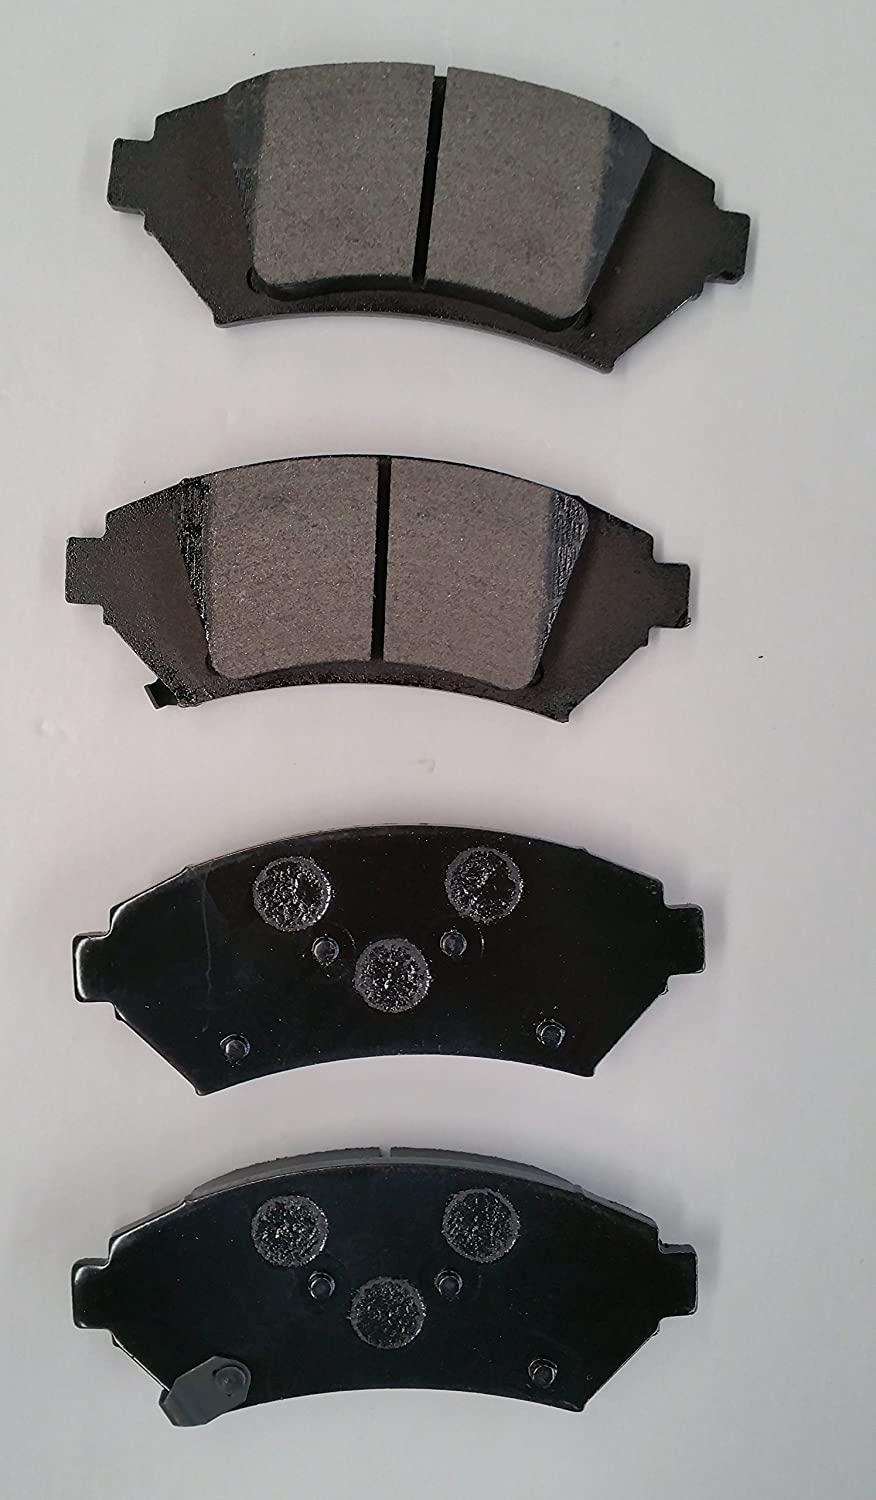 04 05 Fit Subaru Forester w//Rear Disc OE Replacement Rotors M1 Ceramic Pads R